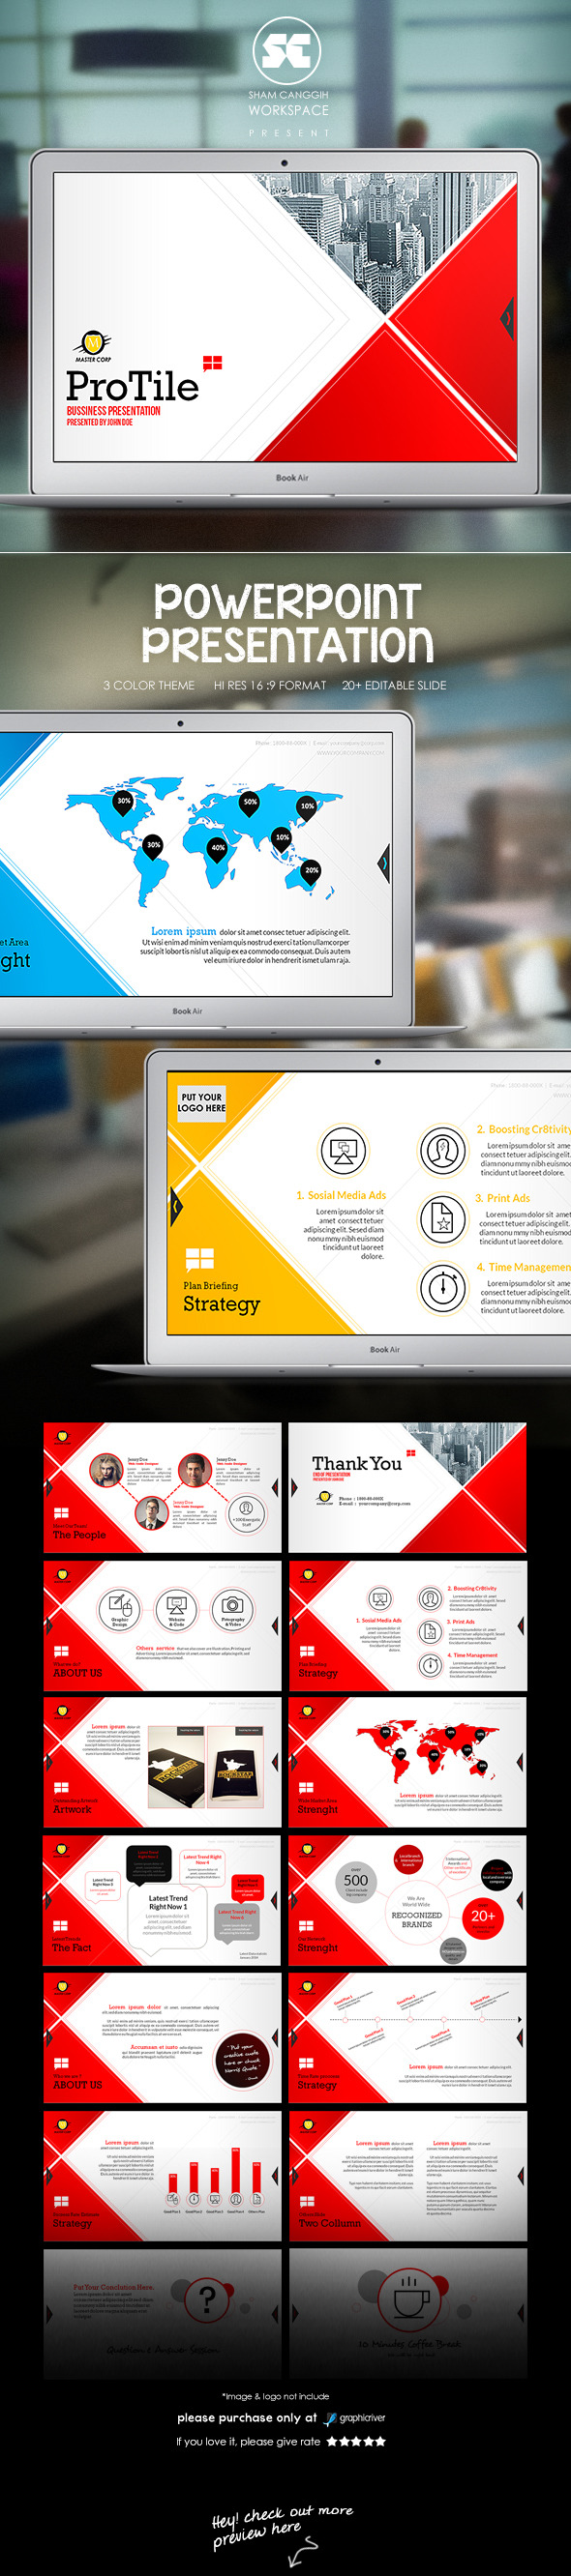 ProTile : Modern Corporate Presentation - PowerPoint Templates Presentation Templates